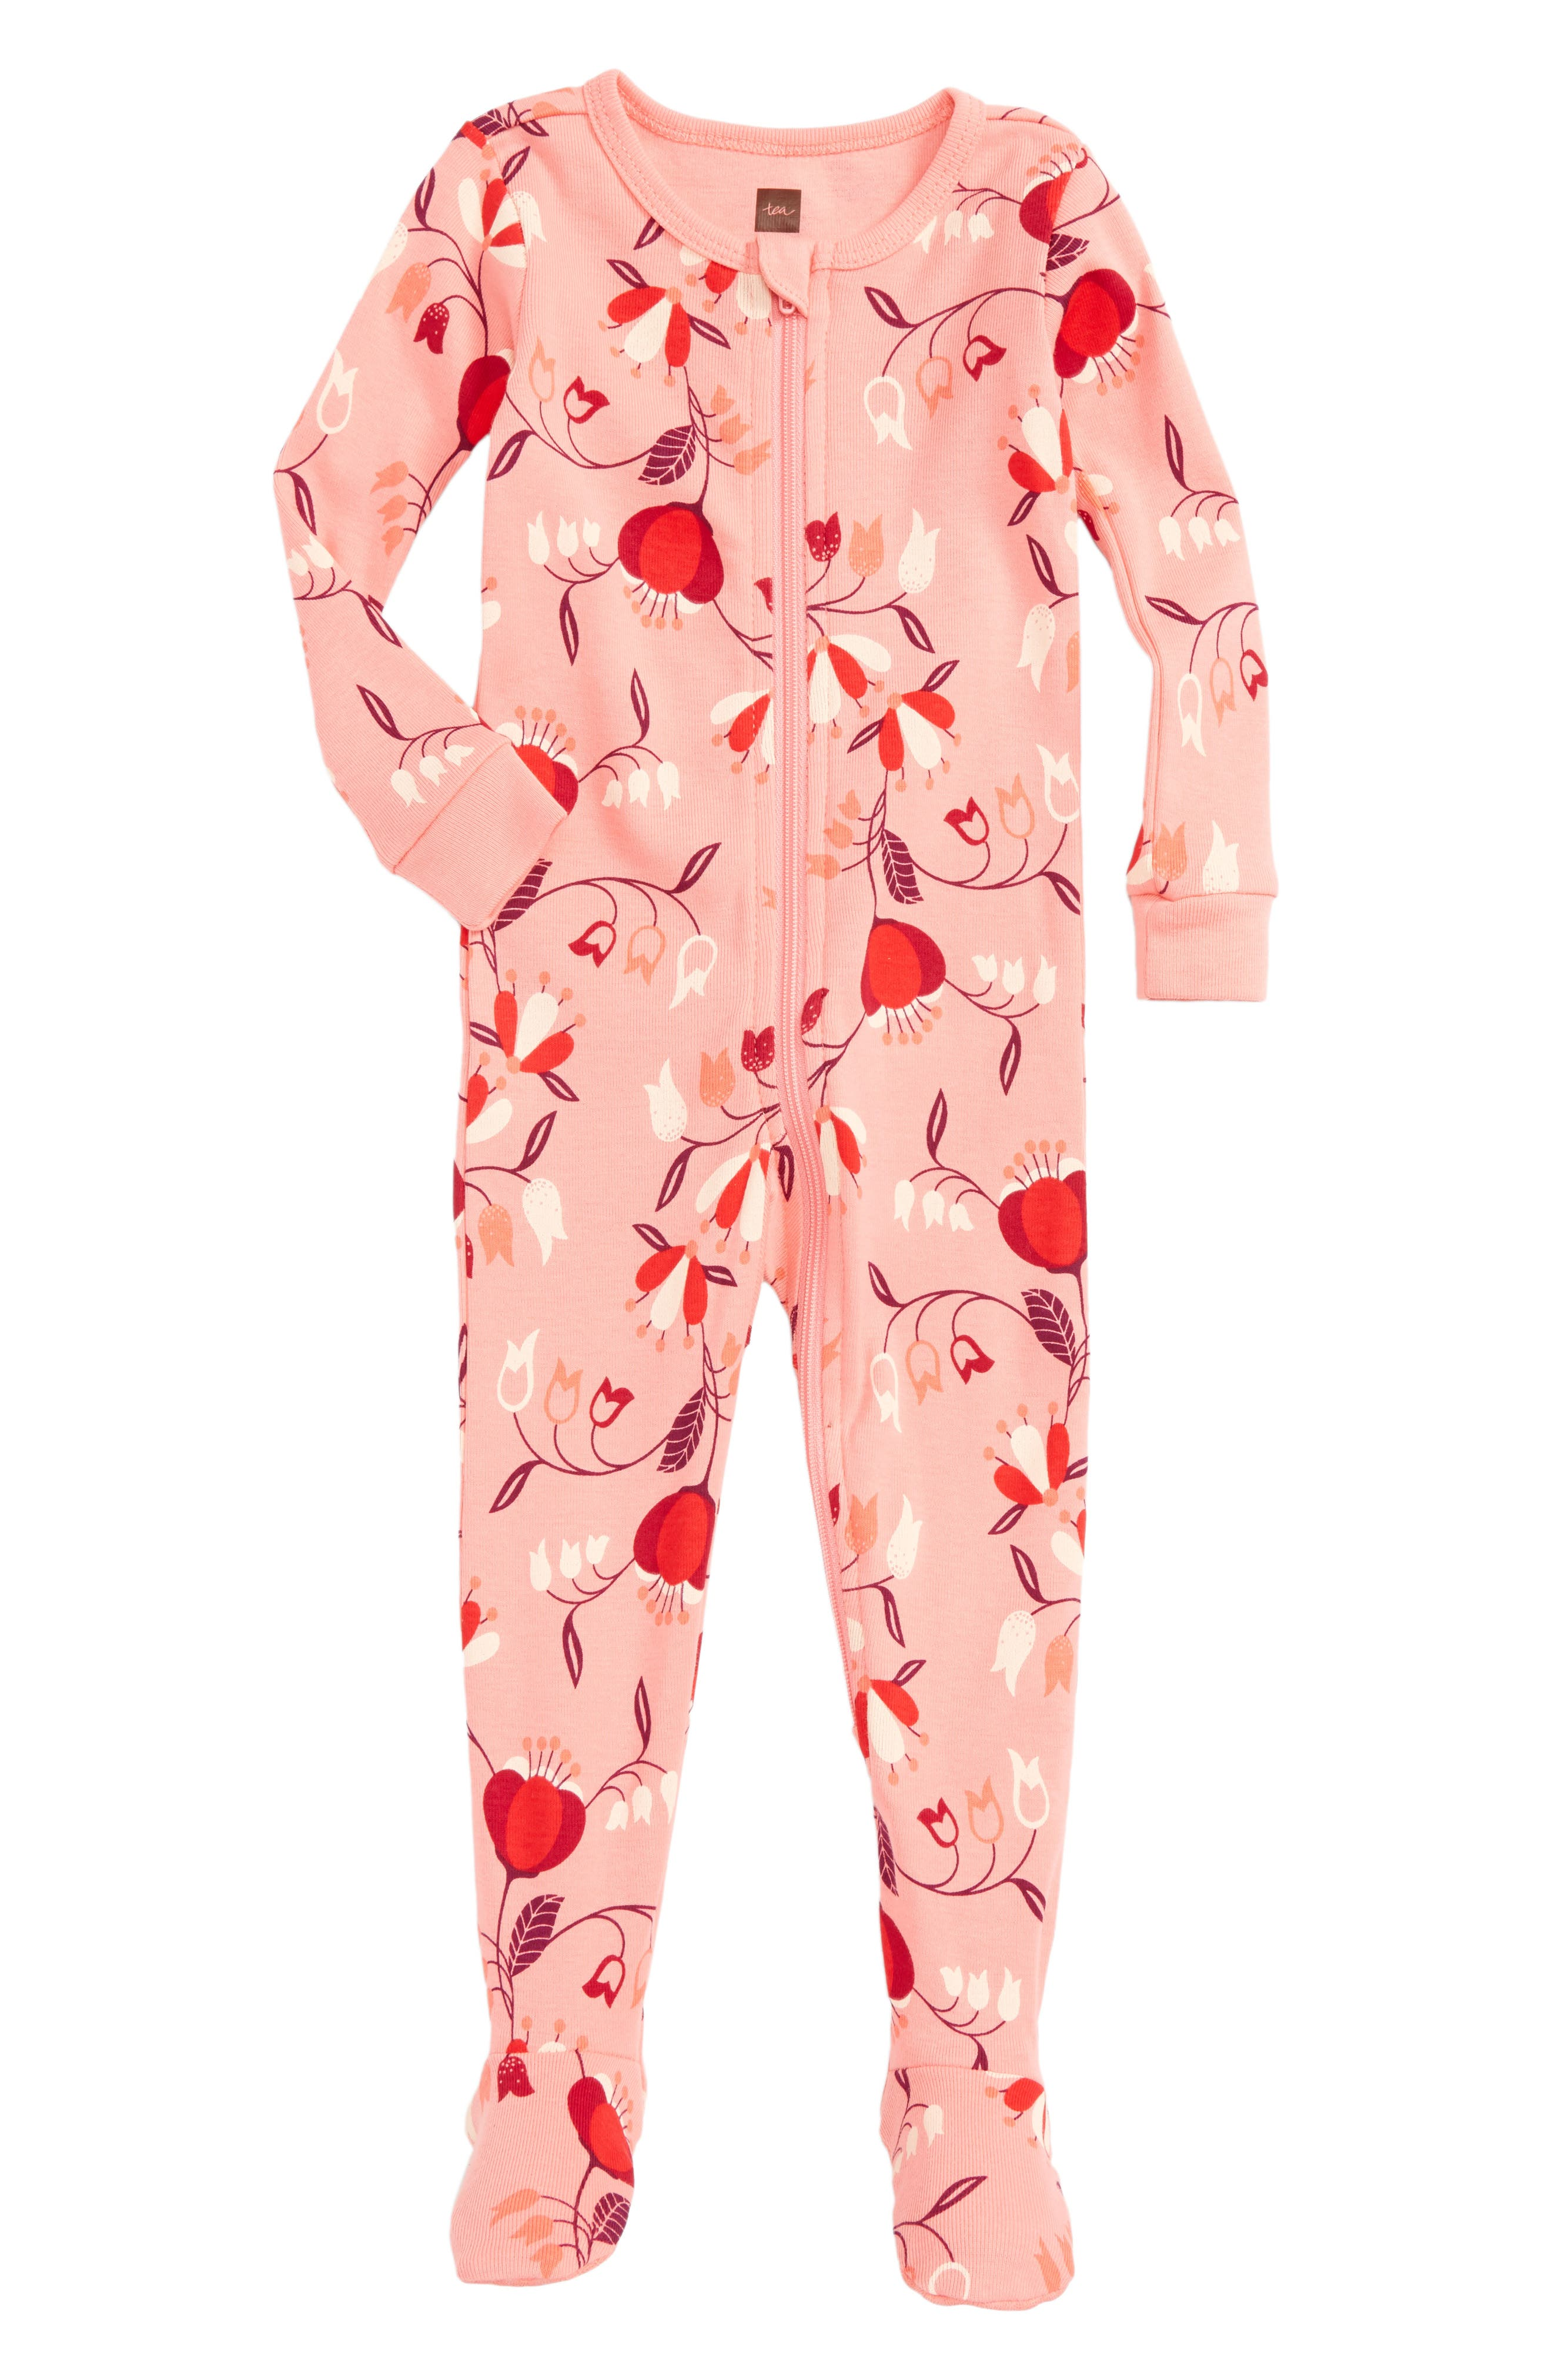 Caer Fitted One-Piece Pajamas,                         Main,                         color, Neon Rosa